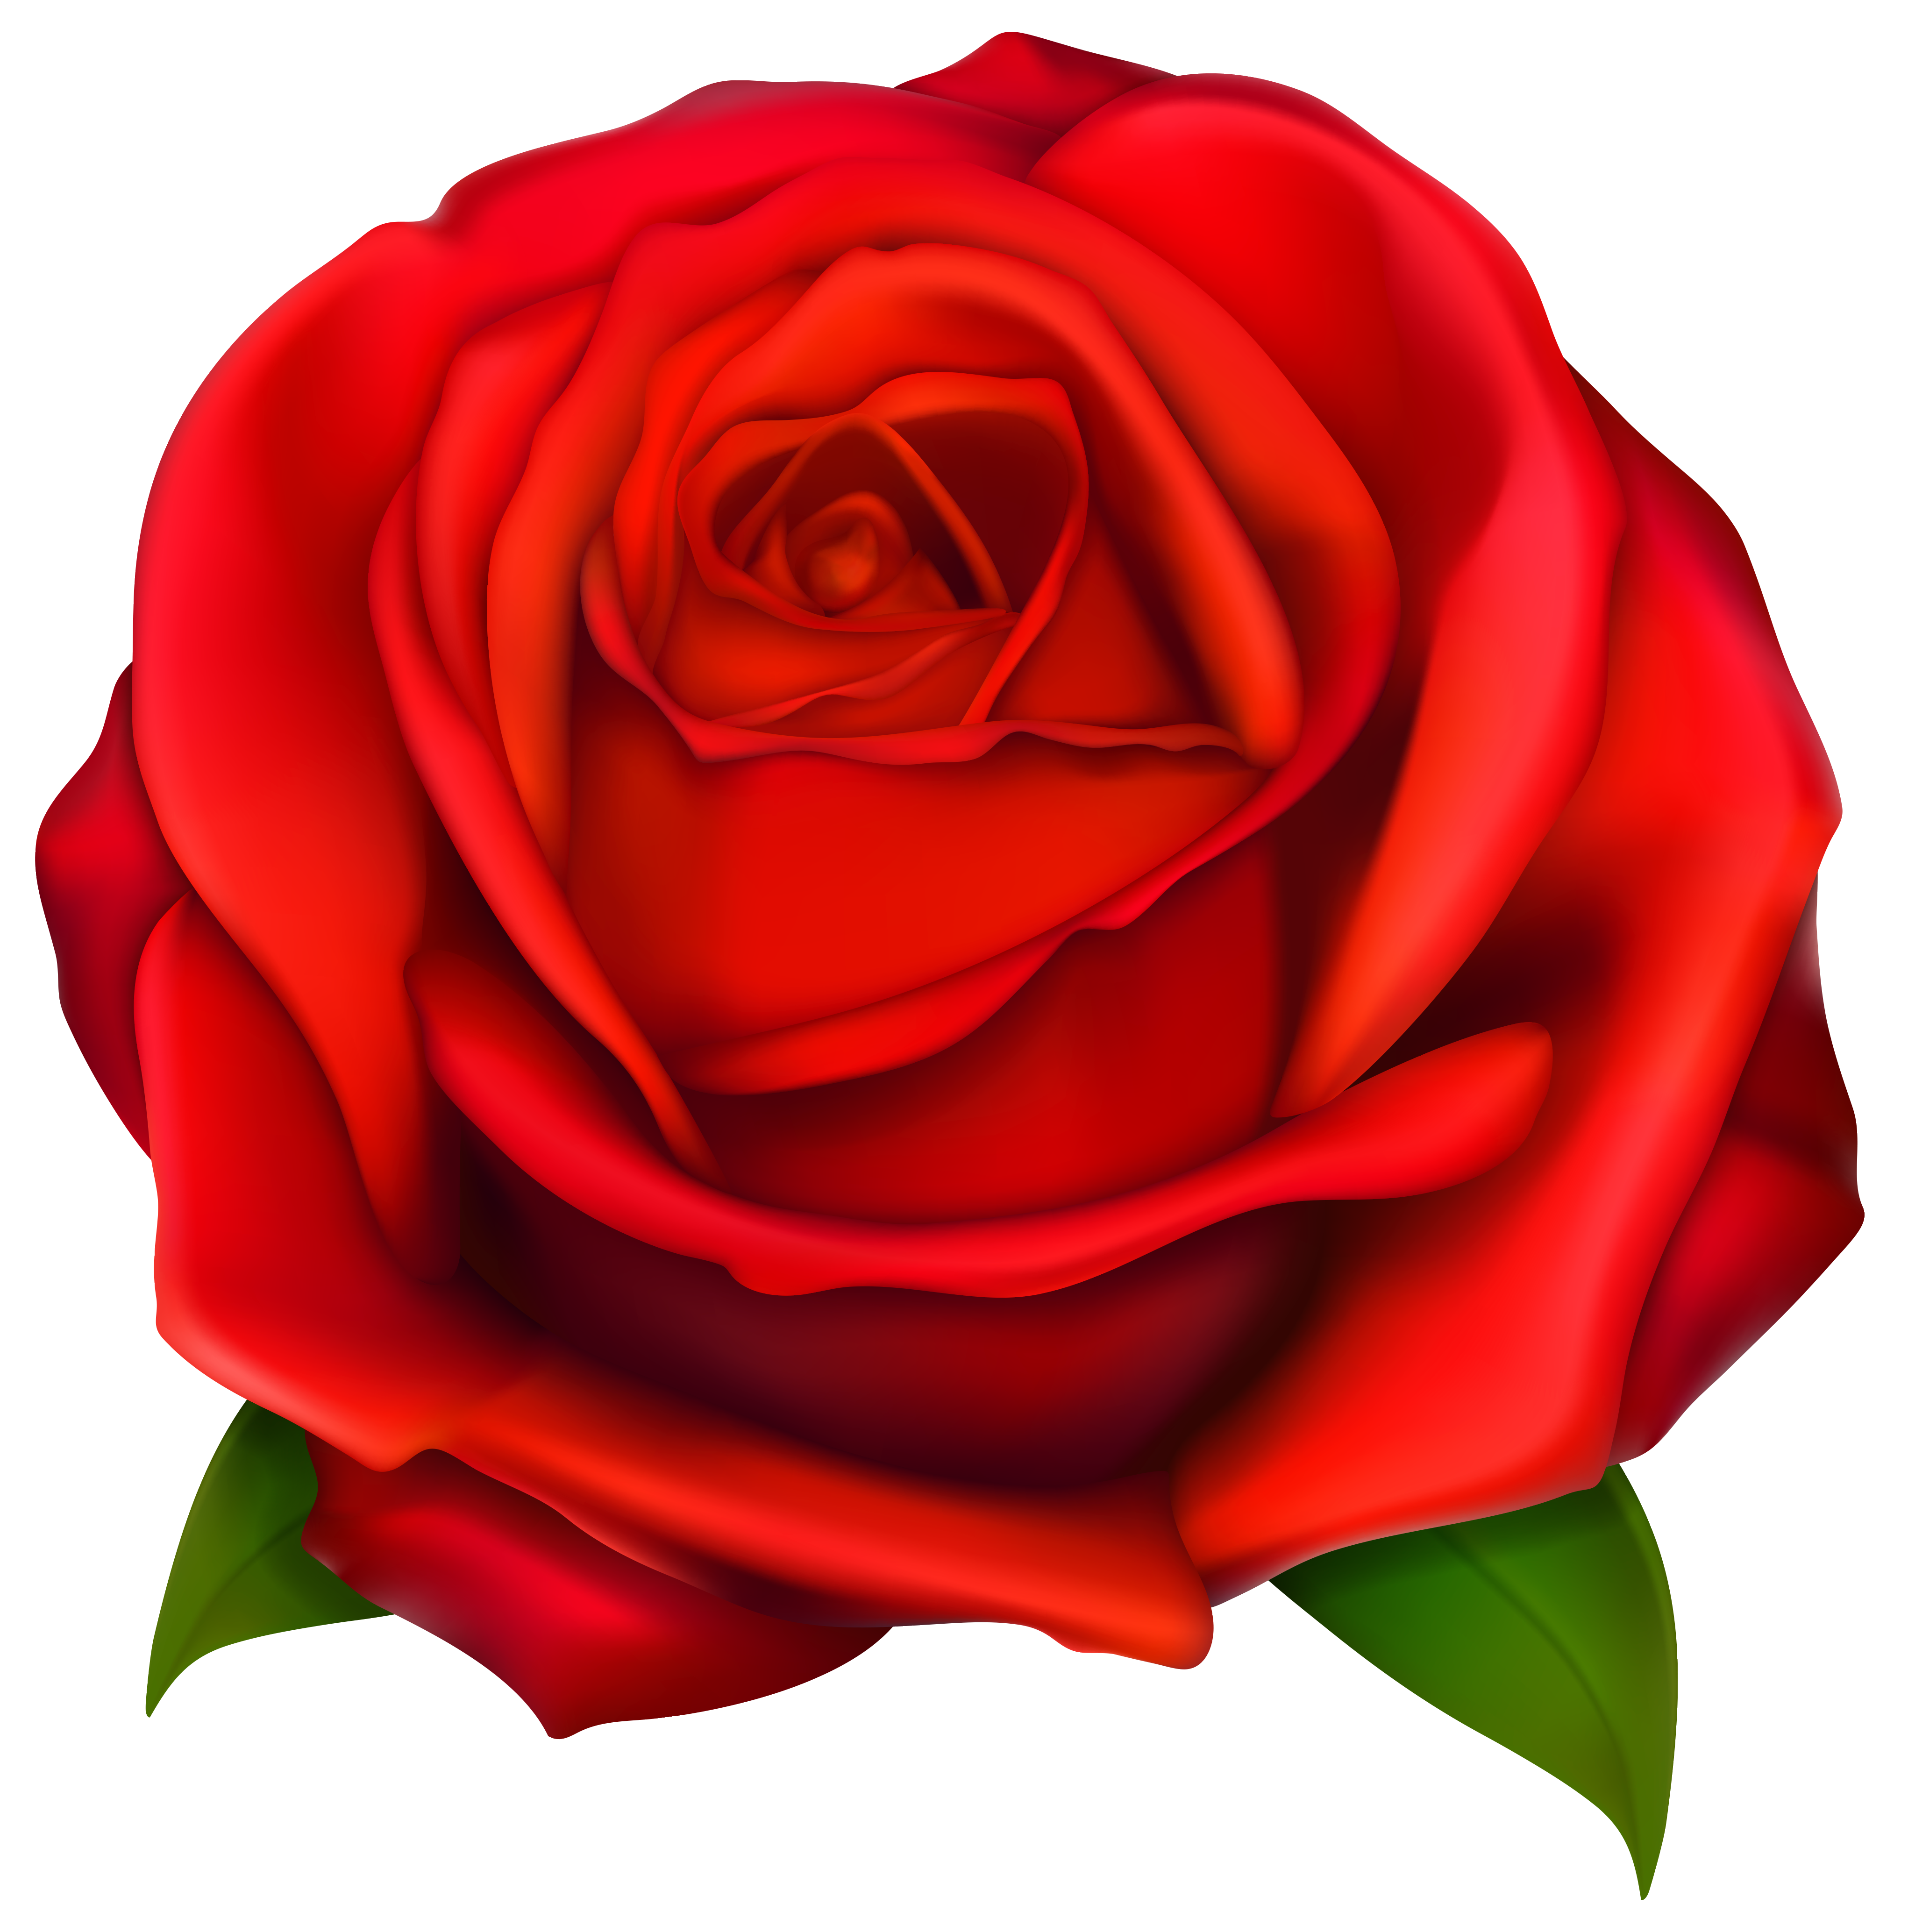 Red Rose clipart #1, Download drawings